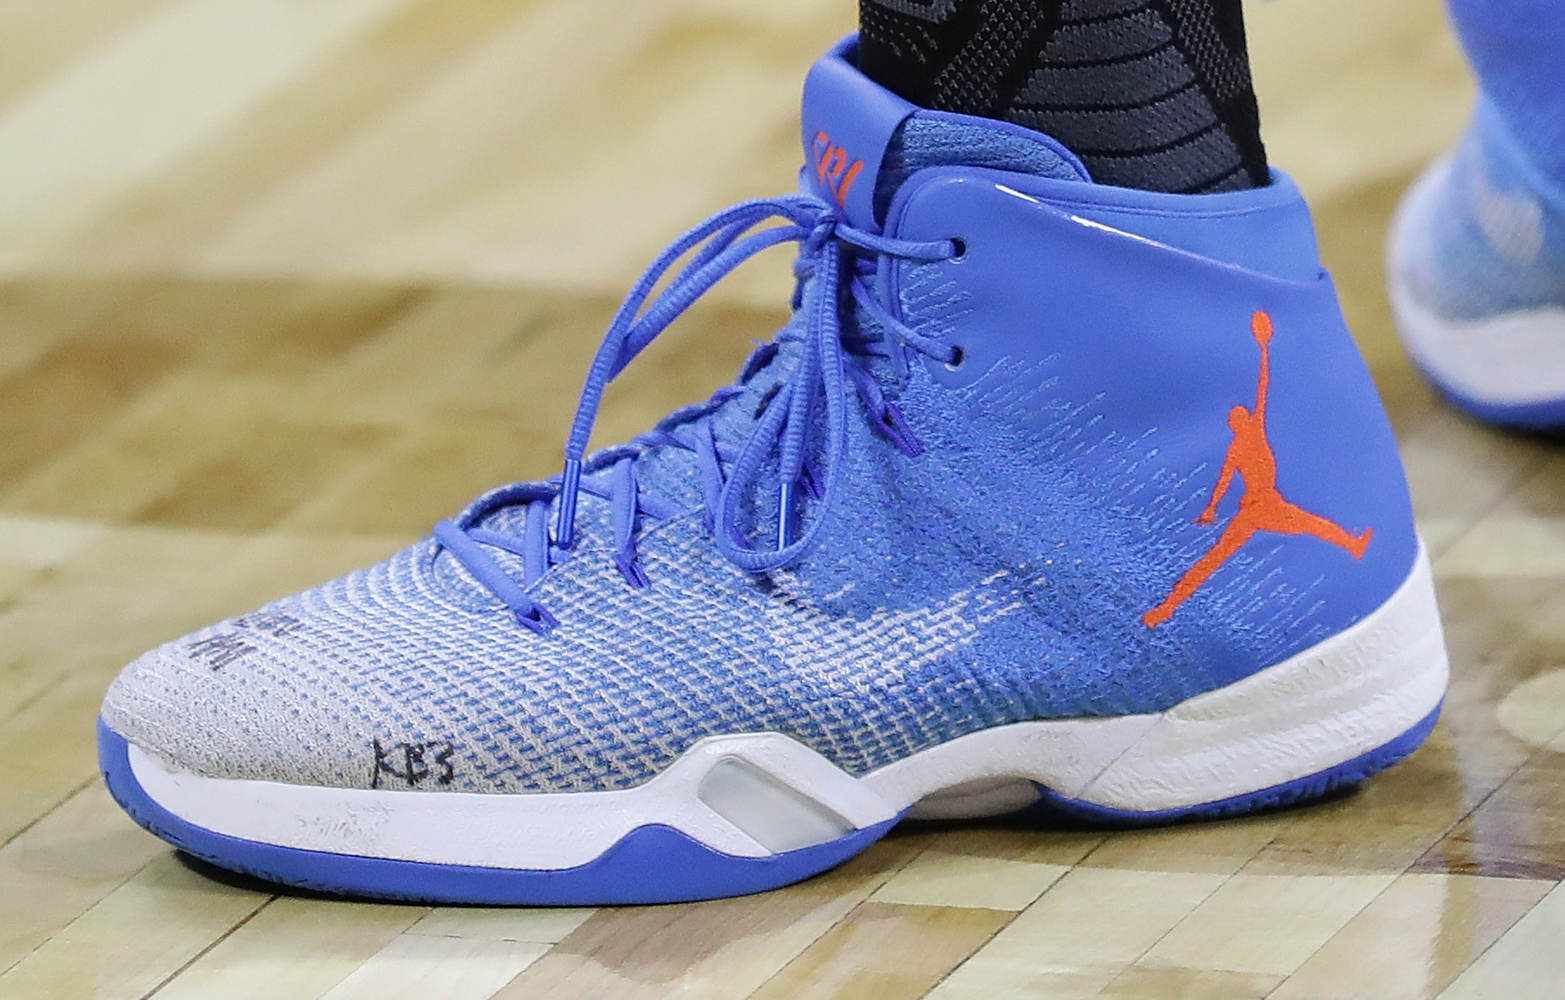 Worn by Russell Westbrook at NBA All-Star practice